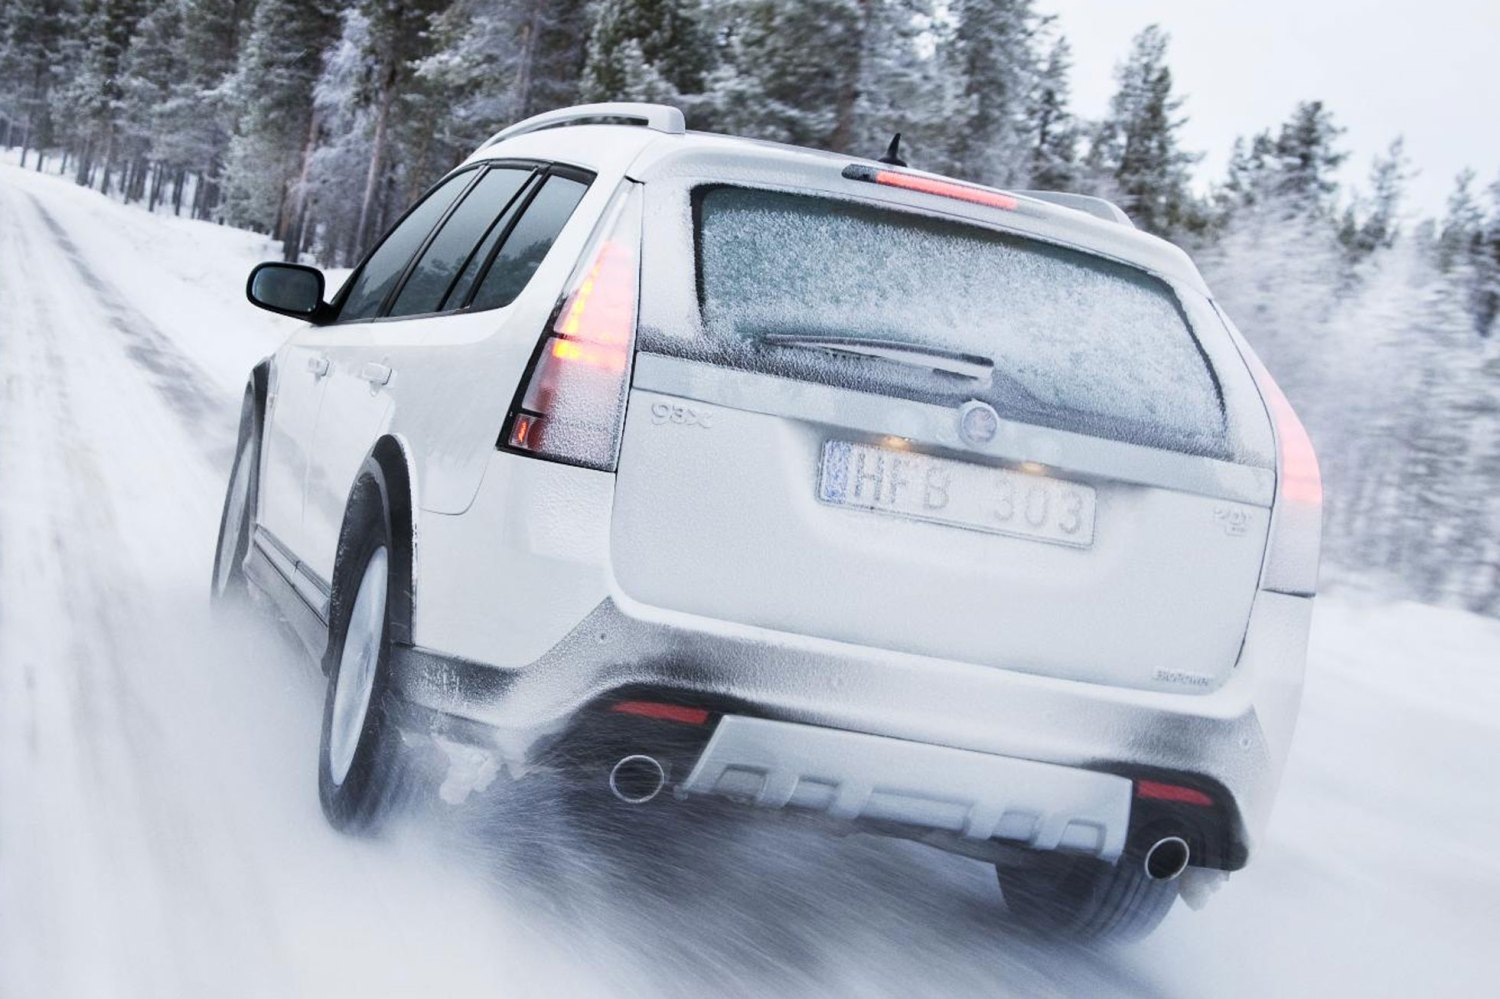 Brits shun winter tyres as they're 'too expensive'